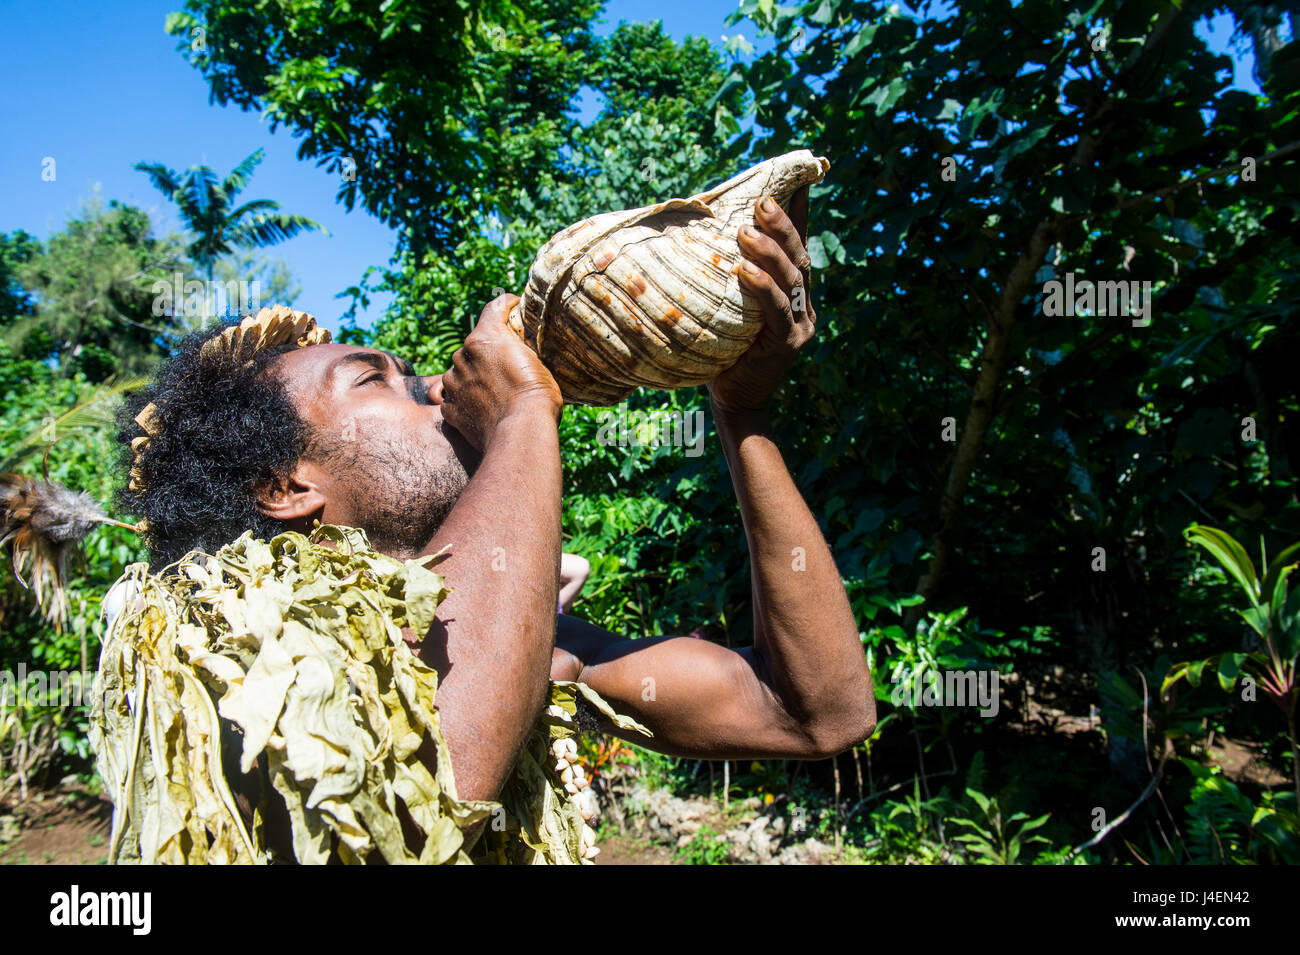 Man blowing in a giant shell, Ekasup Cultural Village, Efate, Vanuatu, Pacific - Stock Image